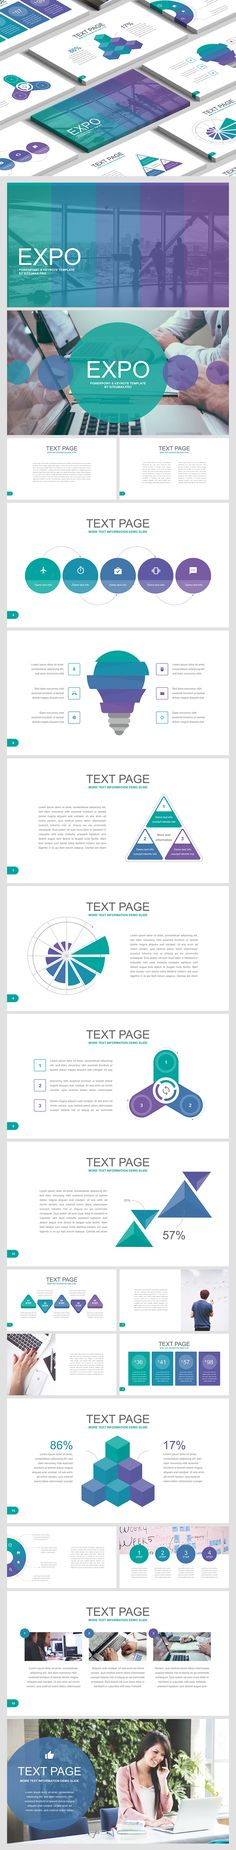 FREE Keynote template Download link: http://site2max.pro/expo-free-keynote-template/ #marketing #keynote #free #business #infographic #violet #2017